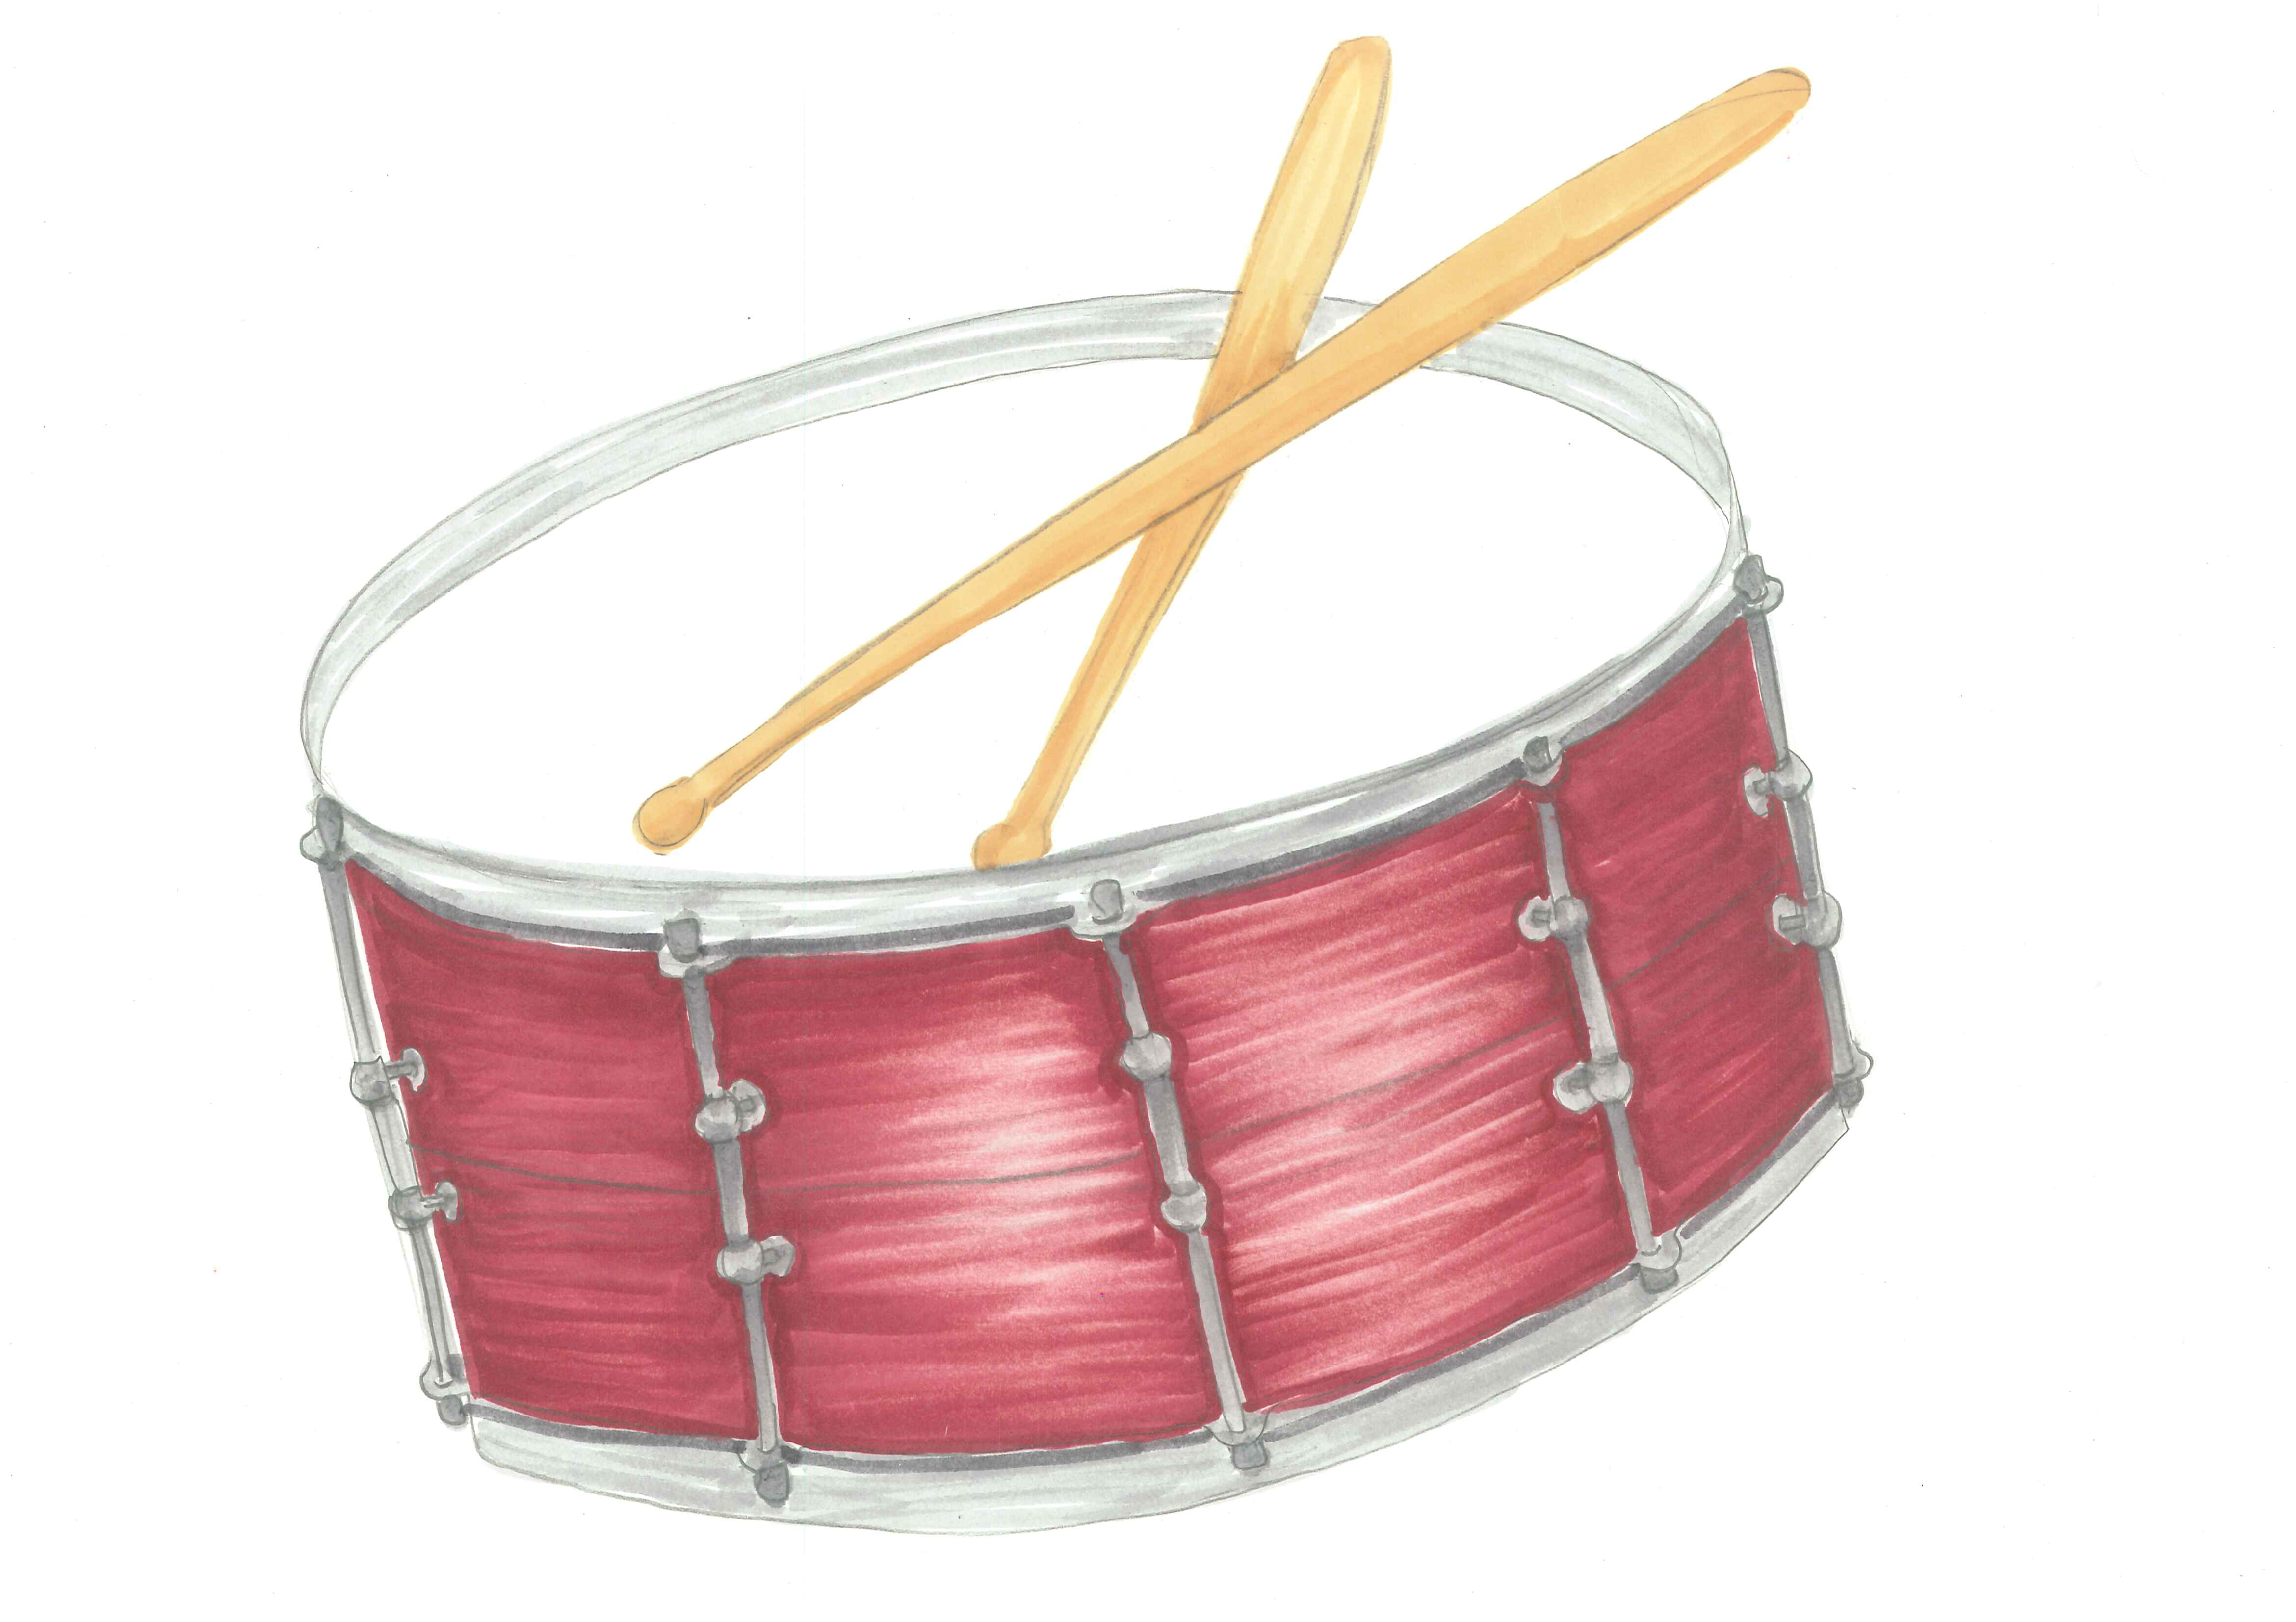 how to buy a snare drum